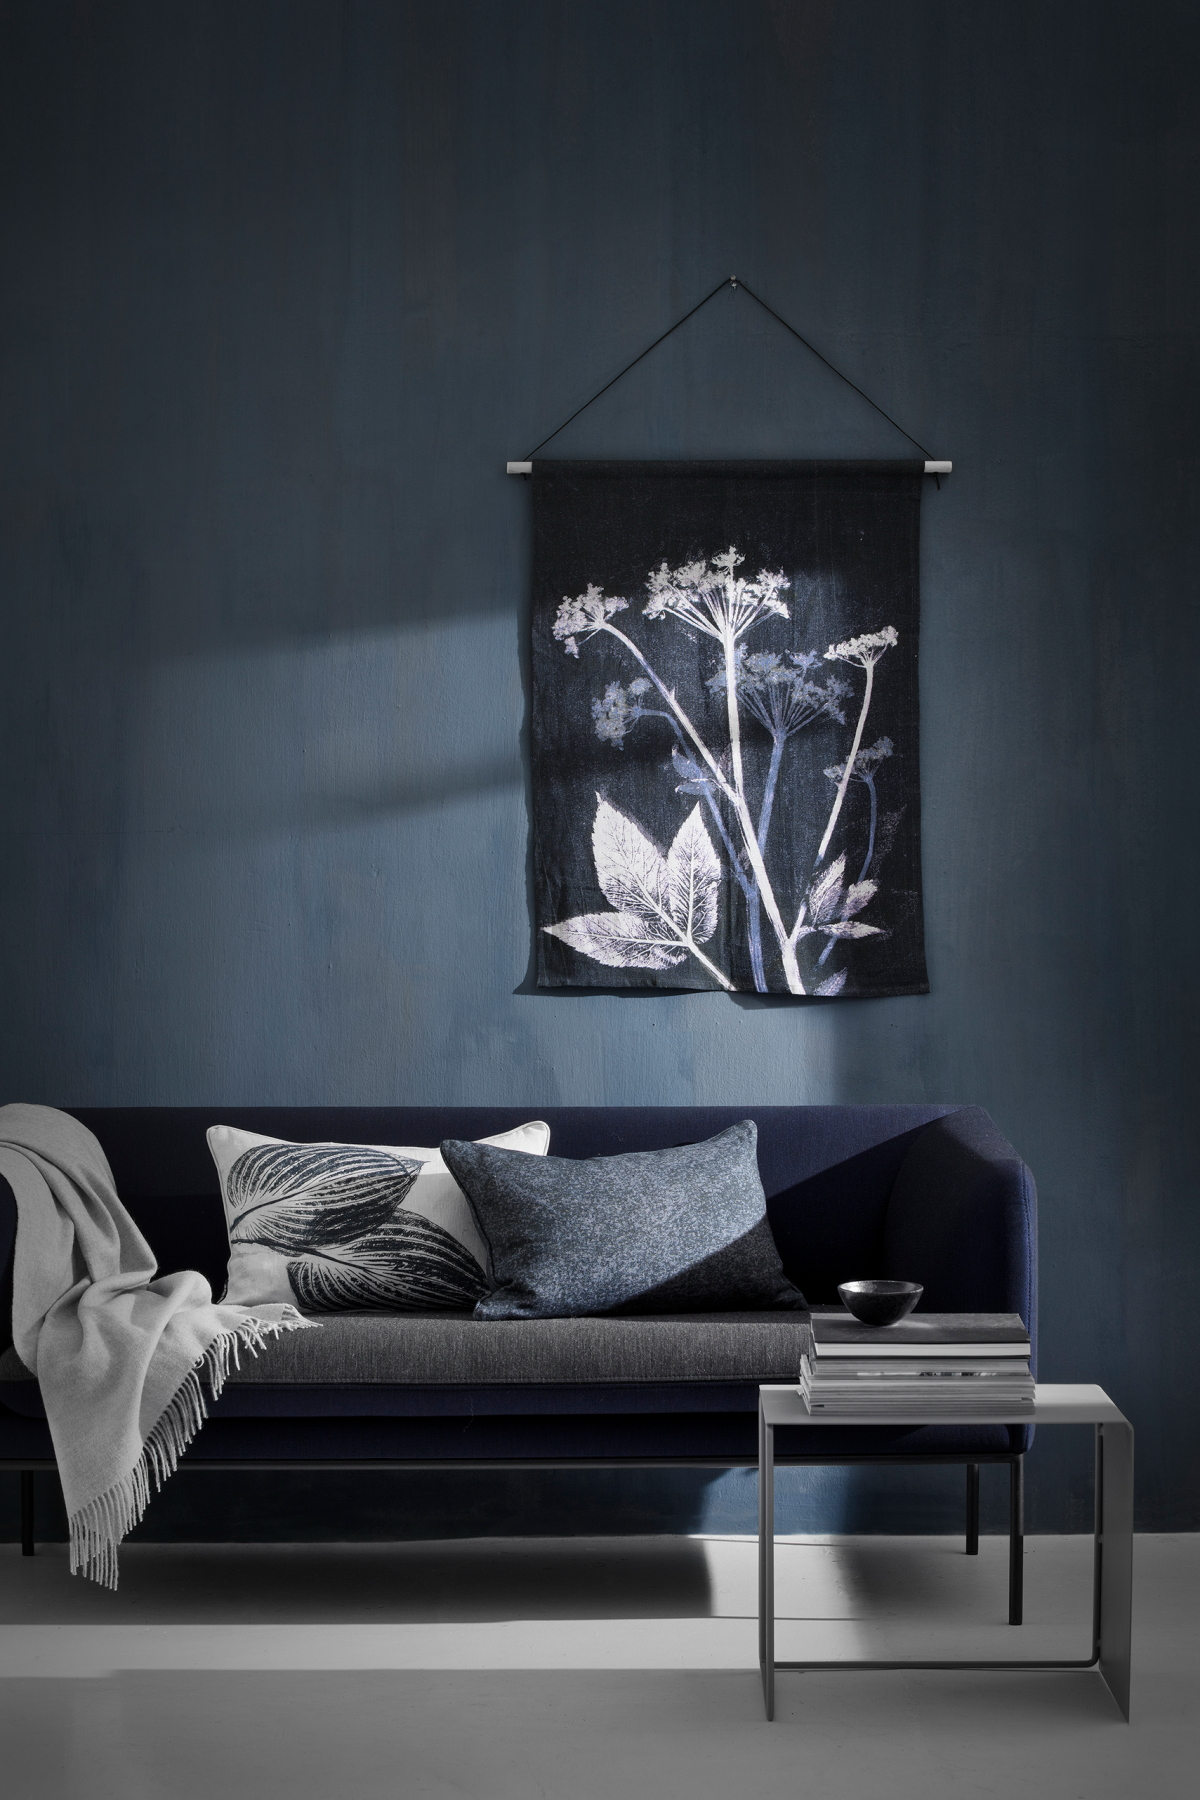 Easy Way To Hang Pictures Without Nails Part - 47: This Is One Of The Easiest Ways To Hang Art Without Damaging Your Wall As  There Are No Nails Needed. You Can Get Hanging Strips At Your Local Arts  And Craft ...